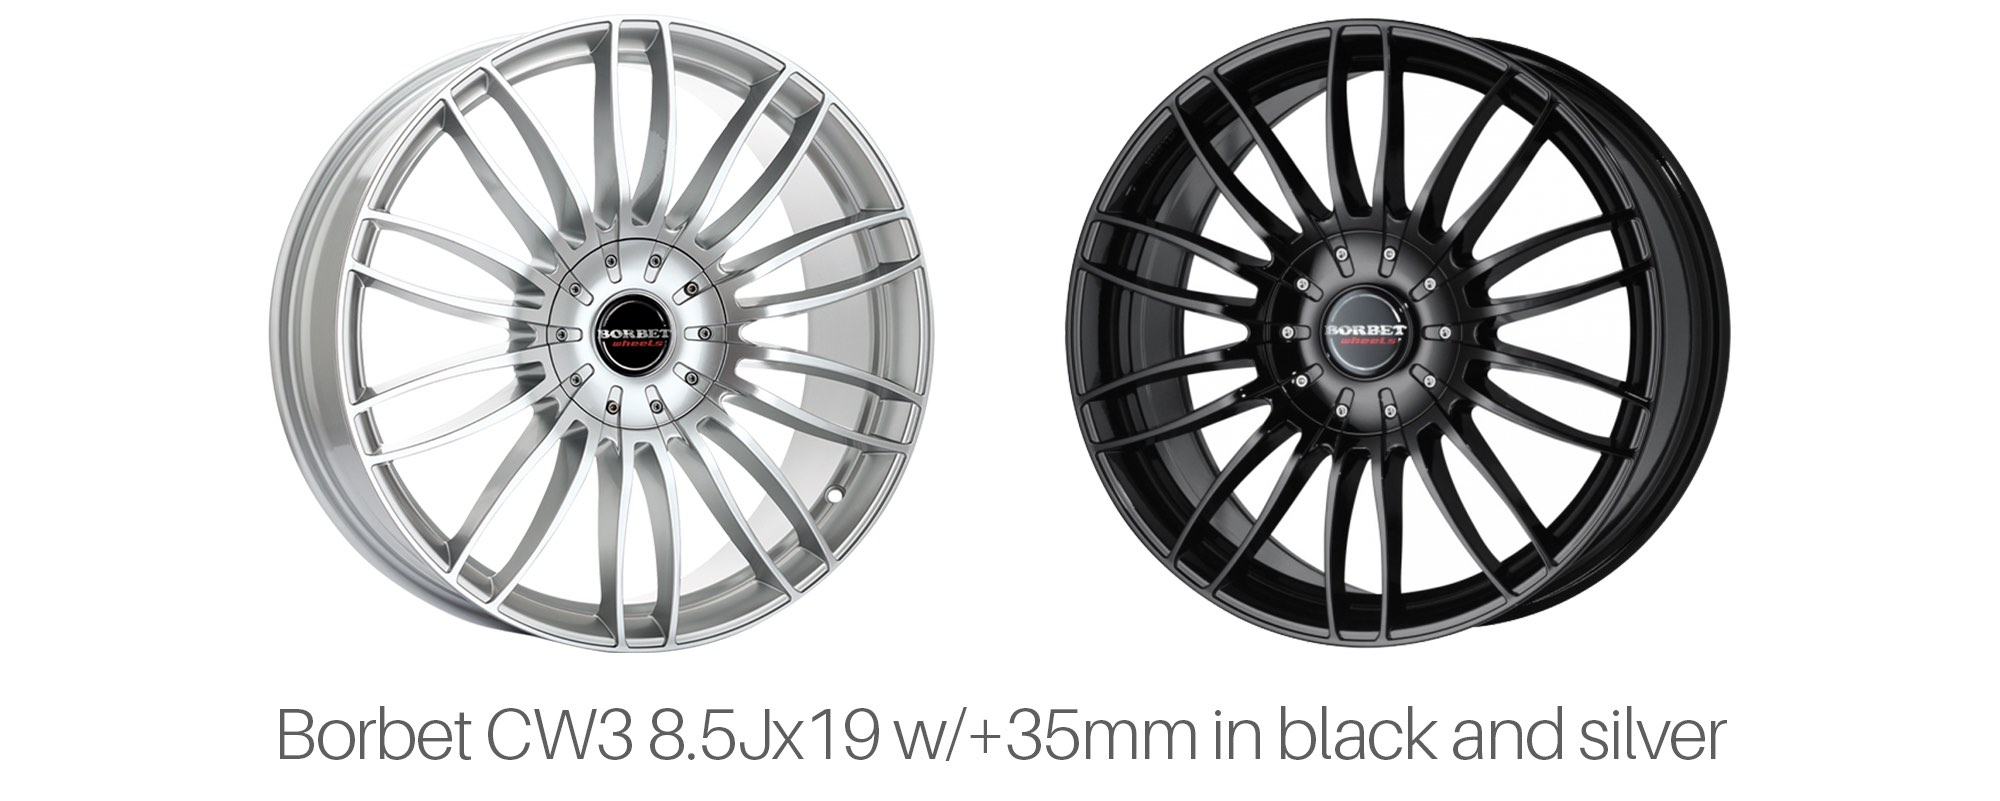 Borbet CW3 Wheels for Tesla Model S